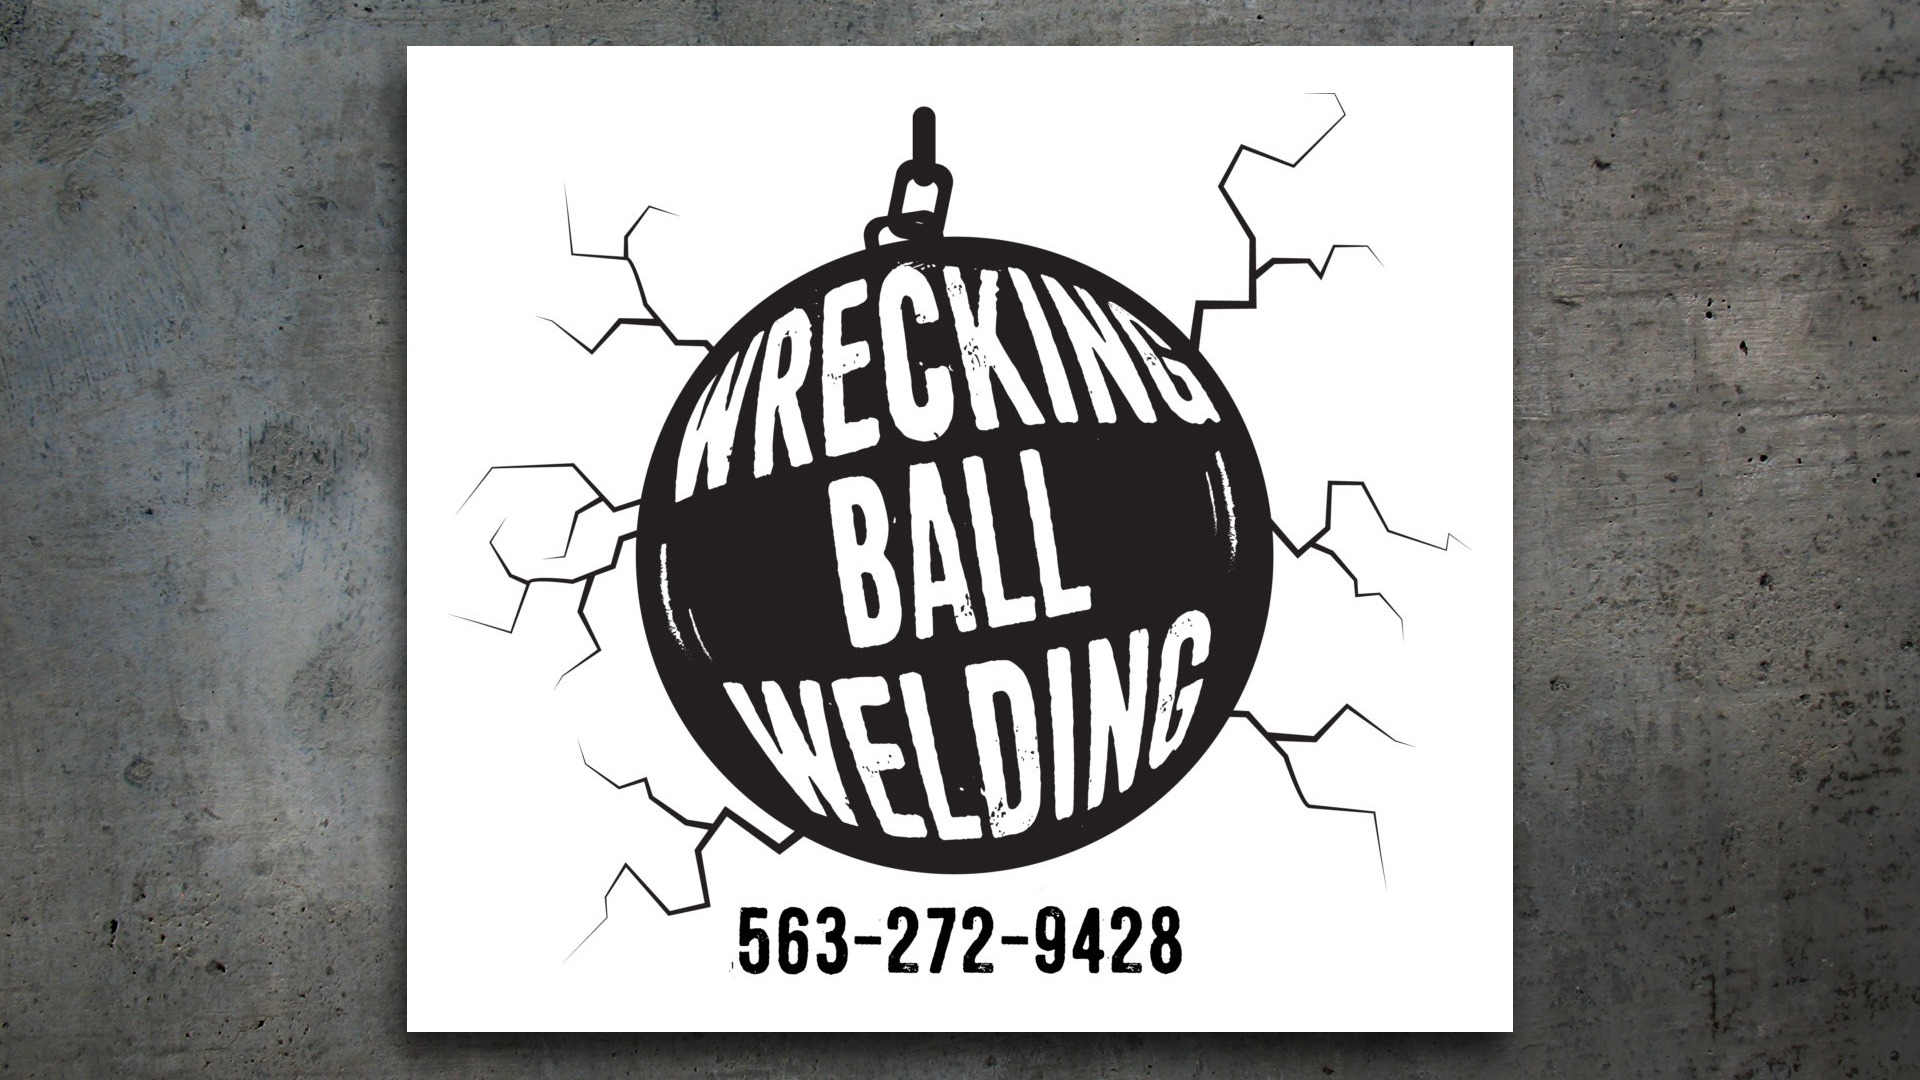 New Logo – Wrecking Ball Welding